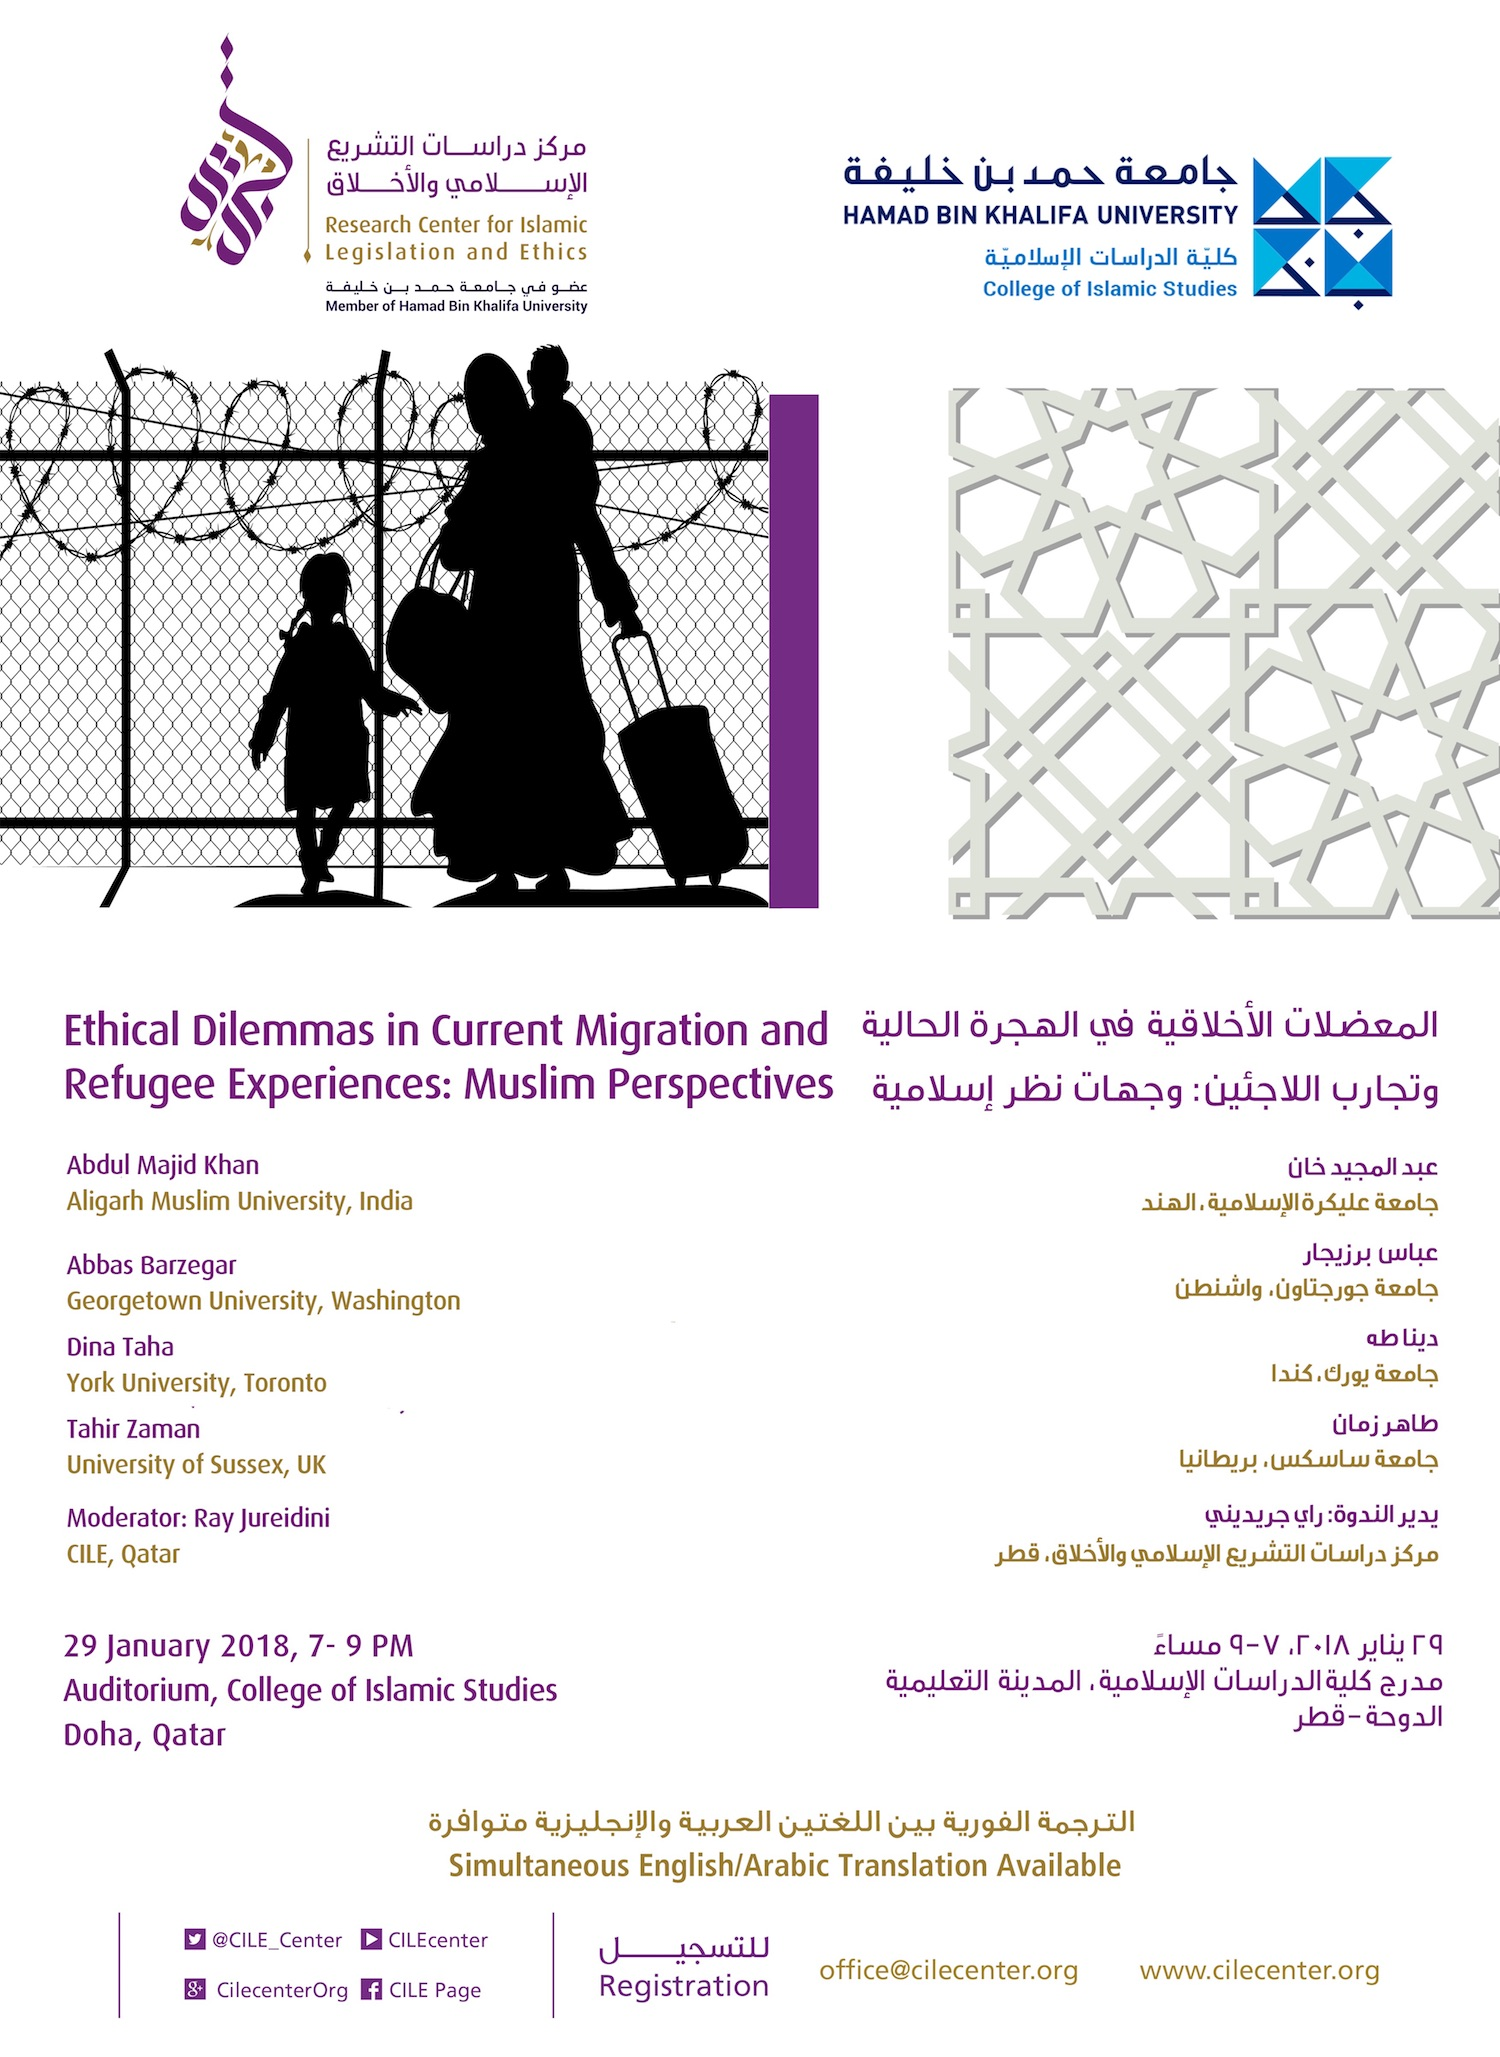 01/2018 Ethical Dilemmas in Current Migration & Refugee Experiences: Muslim Perspectives